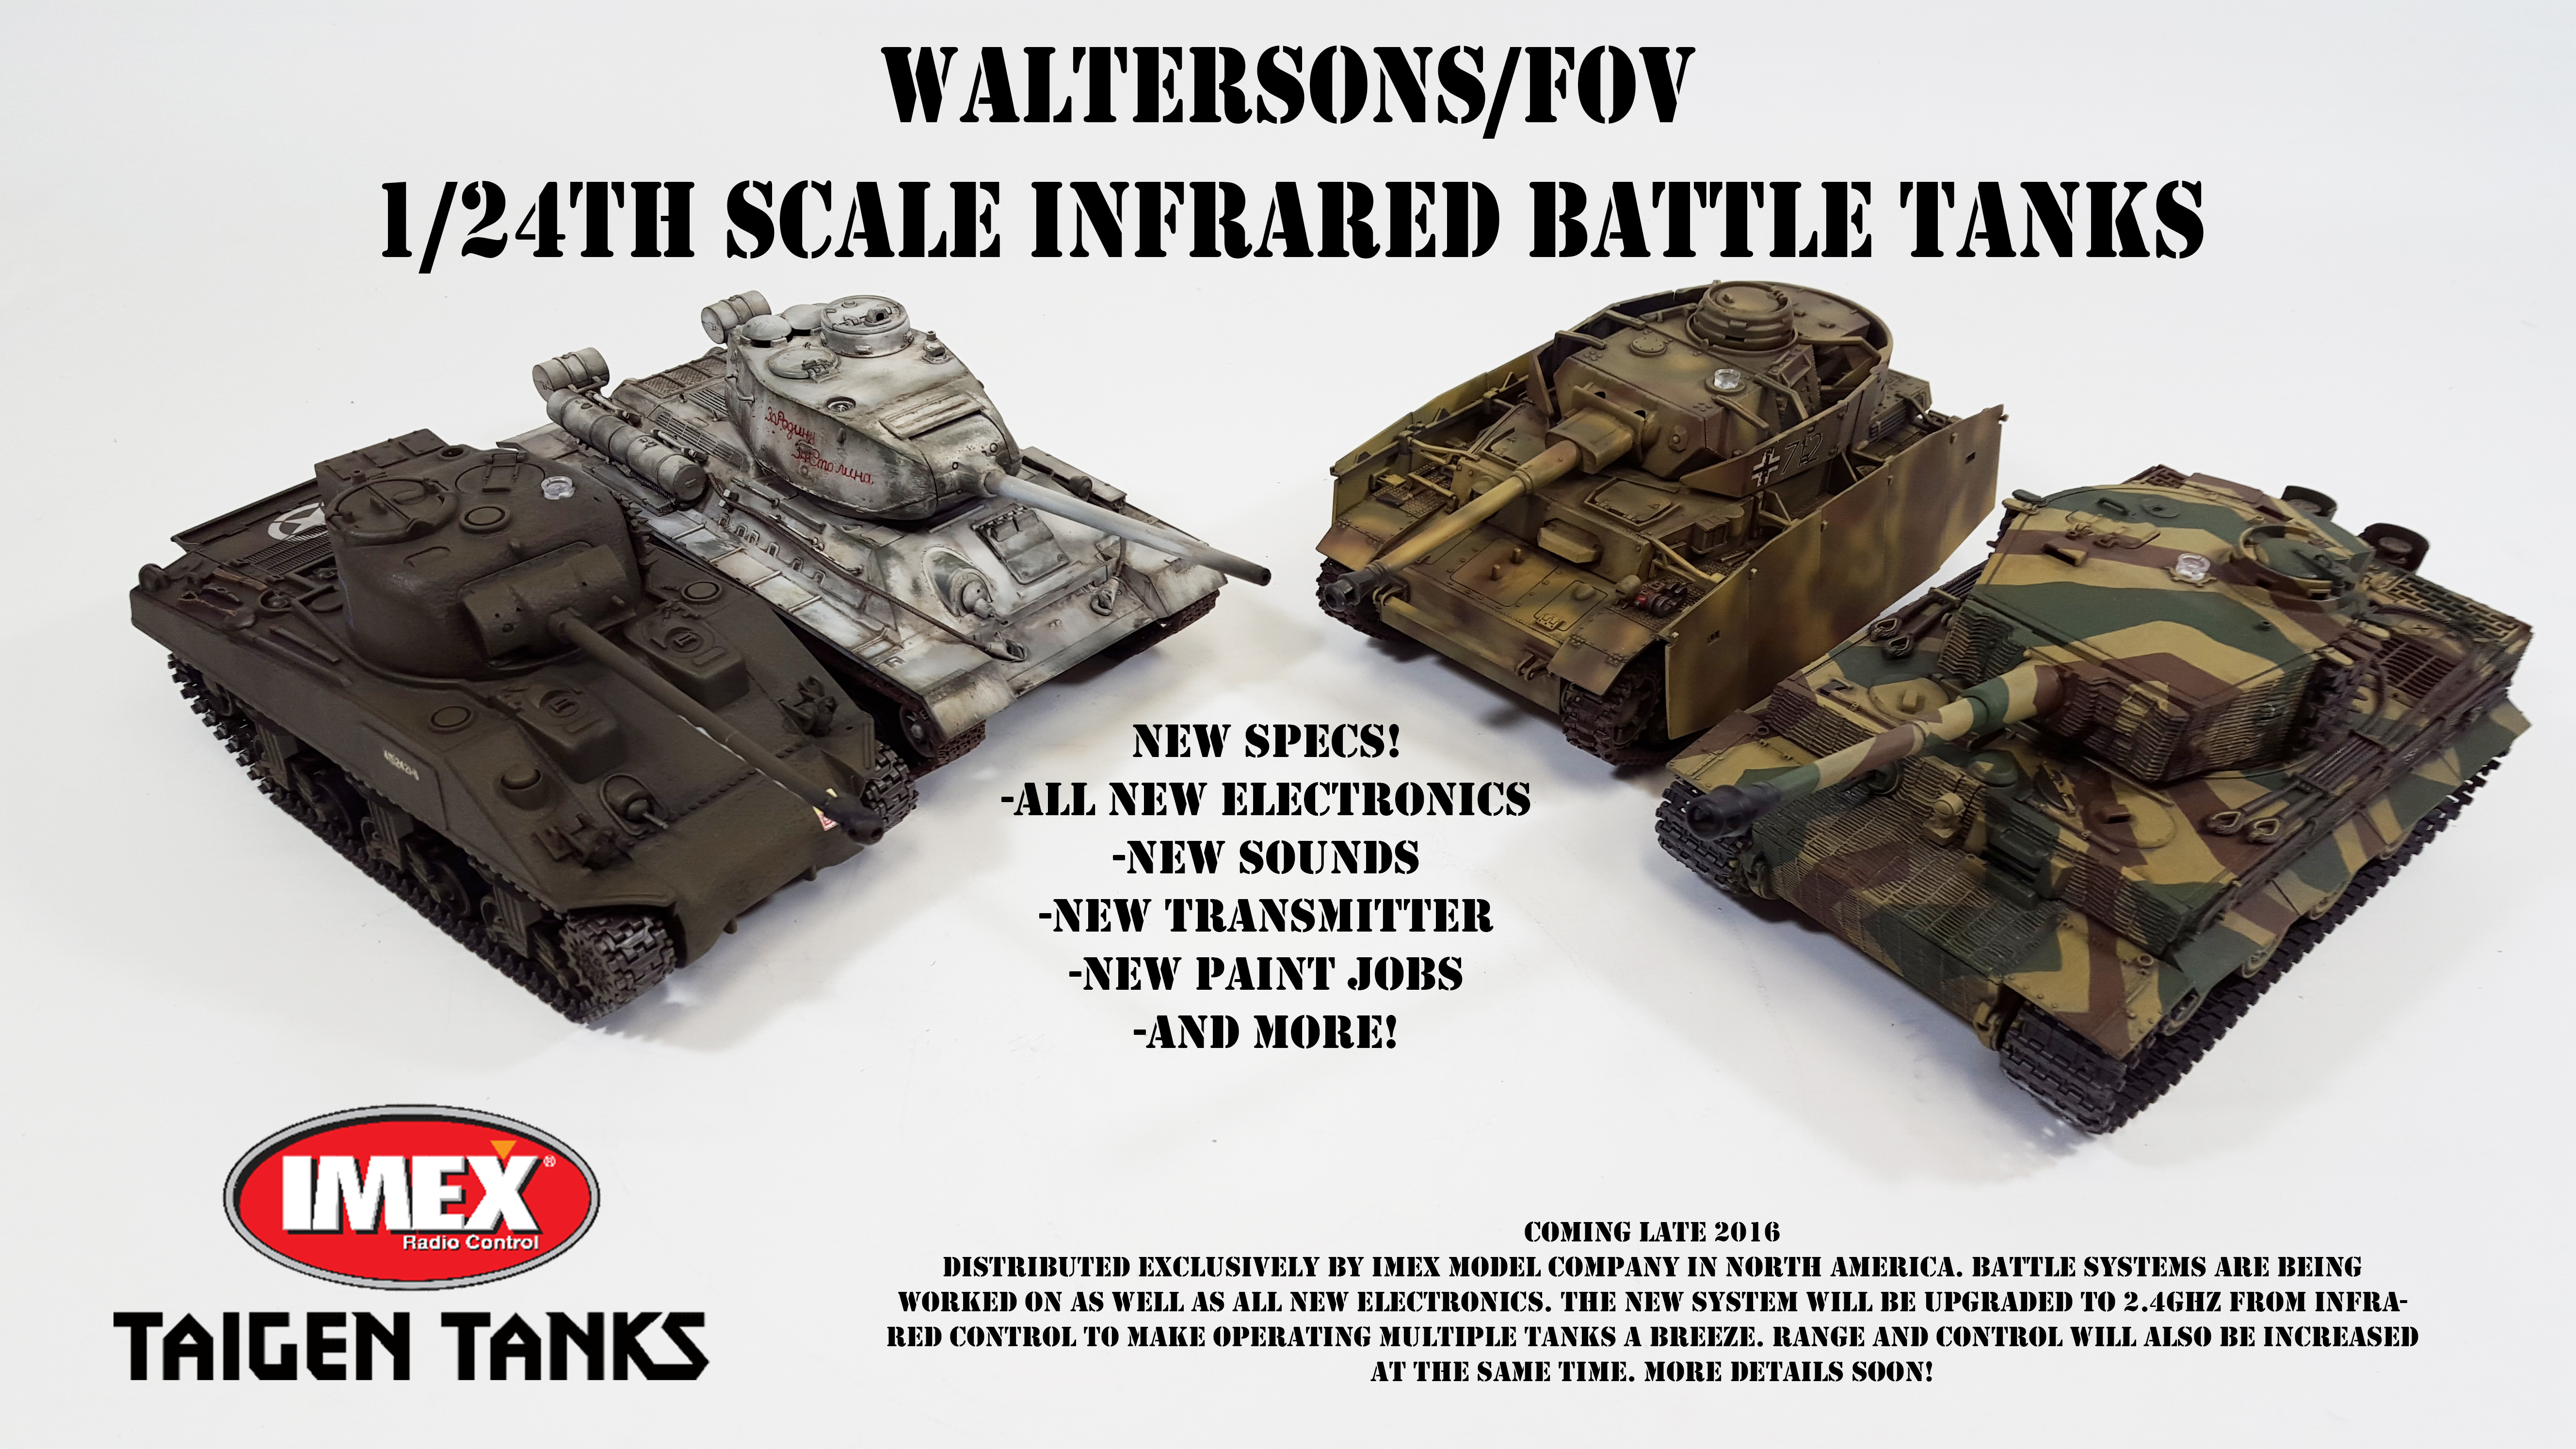 New Waltersons 1/24th Scale IR Battle Tanks! - RCU Forums